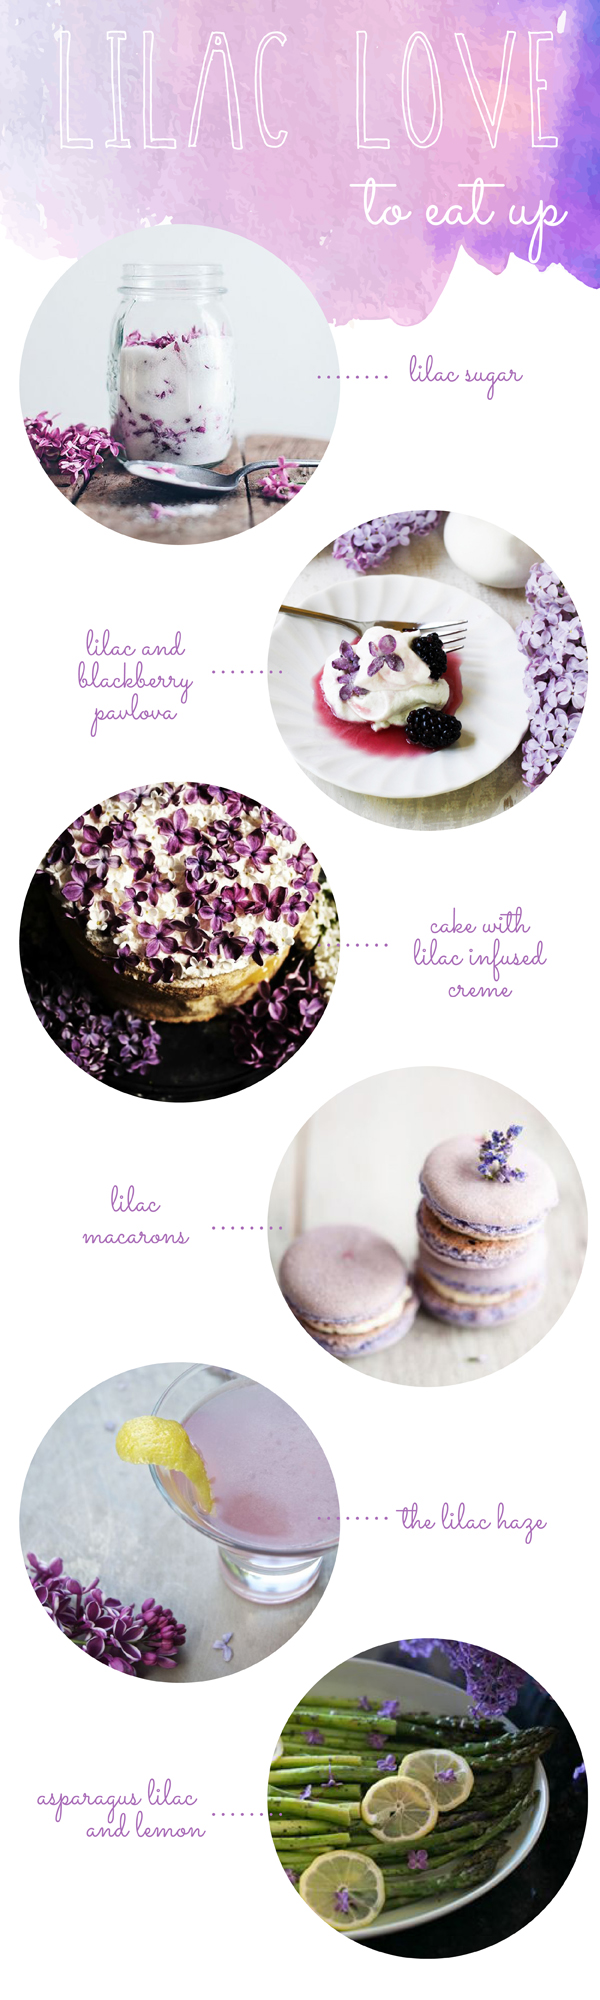 Recipes using lilac flowers / The Sweet Escape